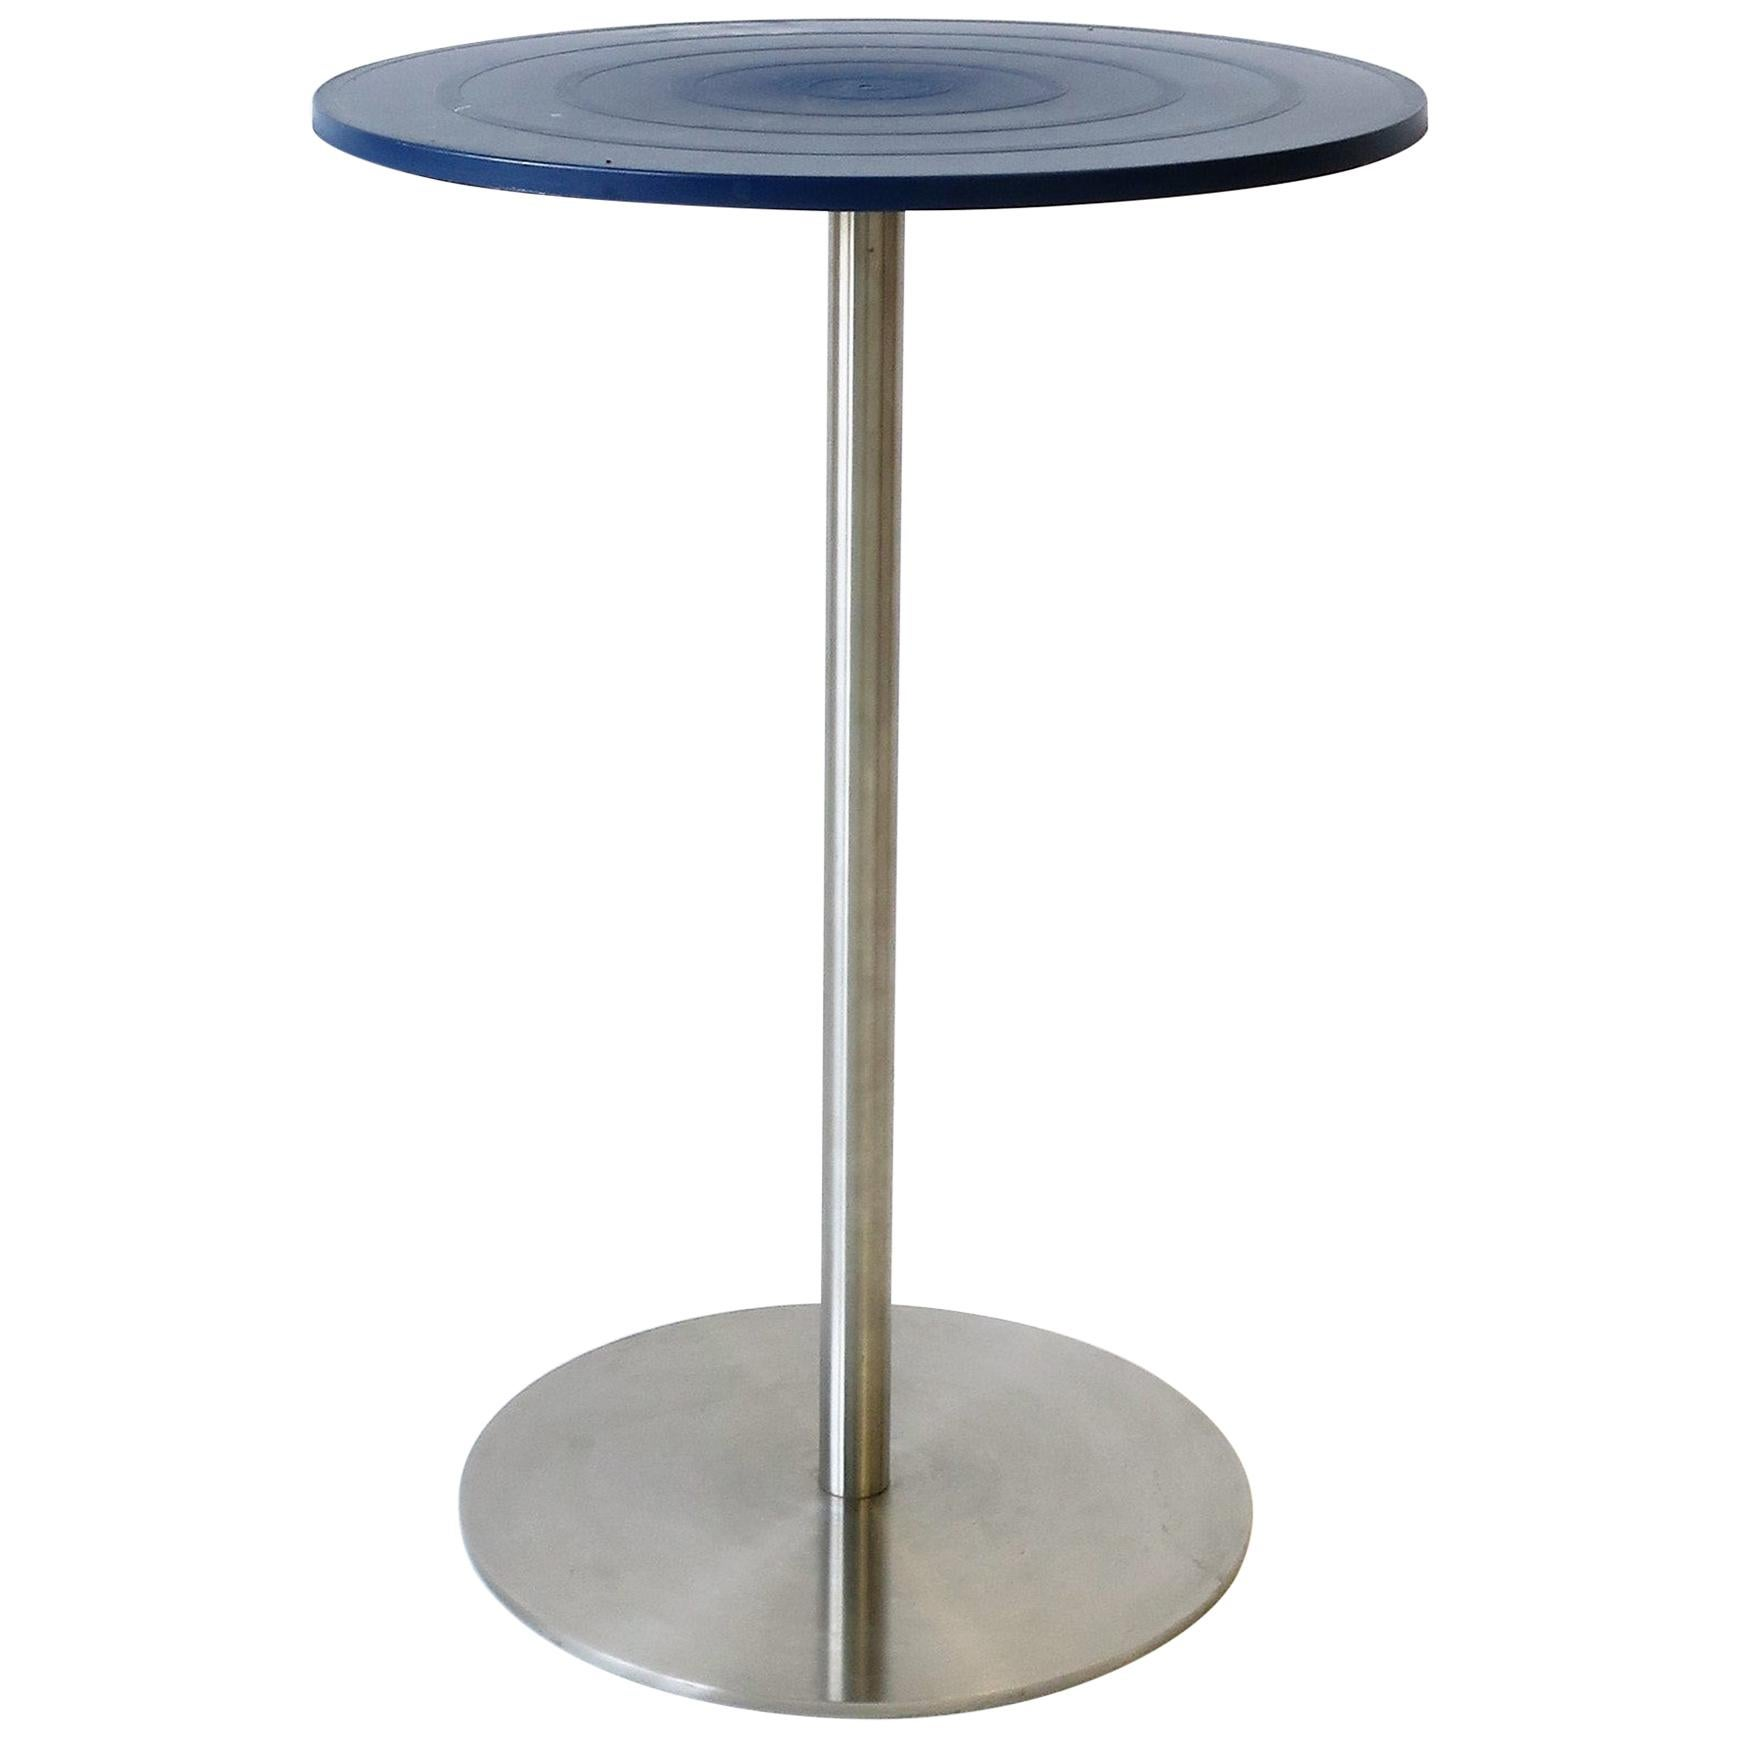 Italian Alessi Postmodern Side Table by Designer Jasper Morrison, 1998